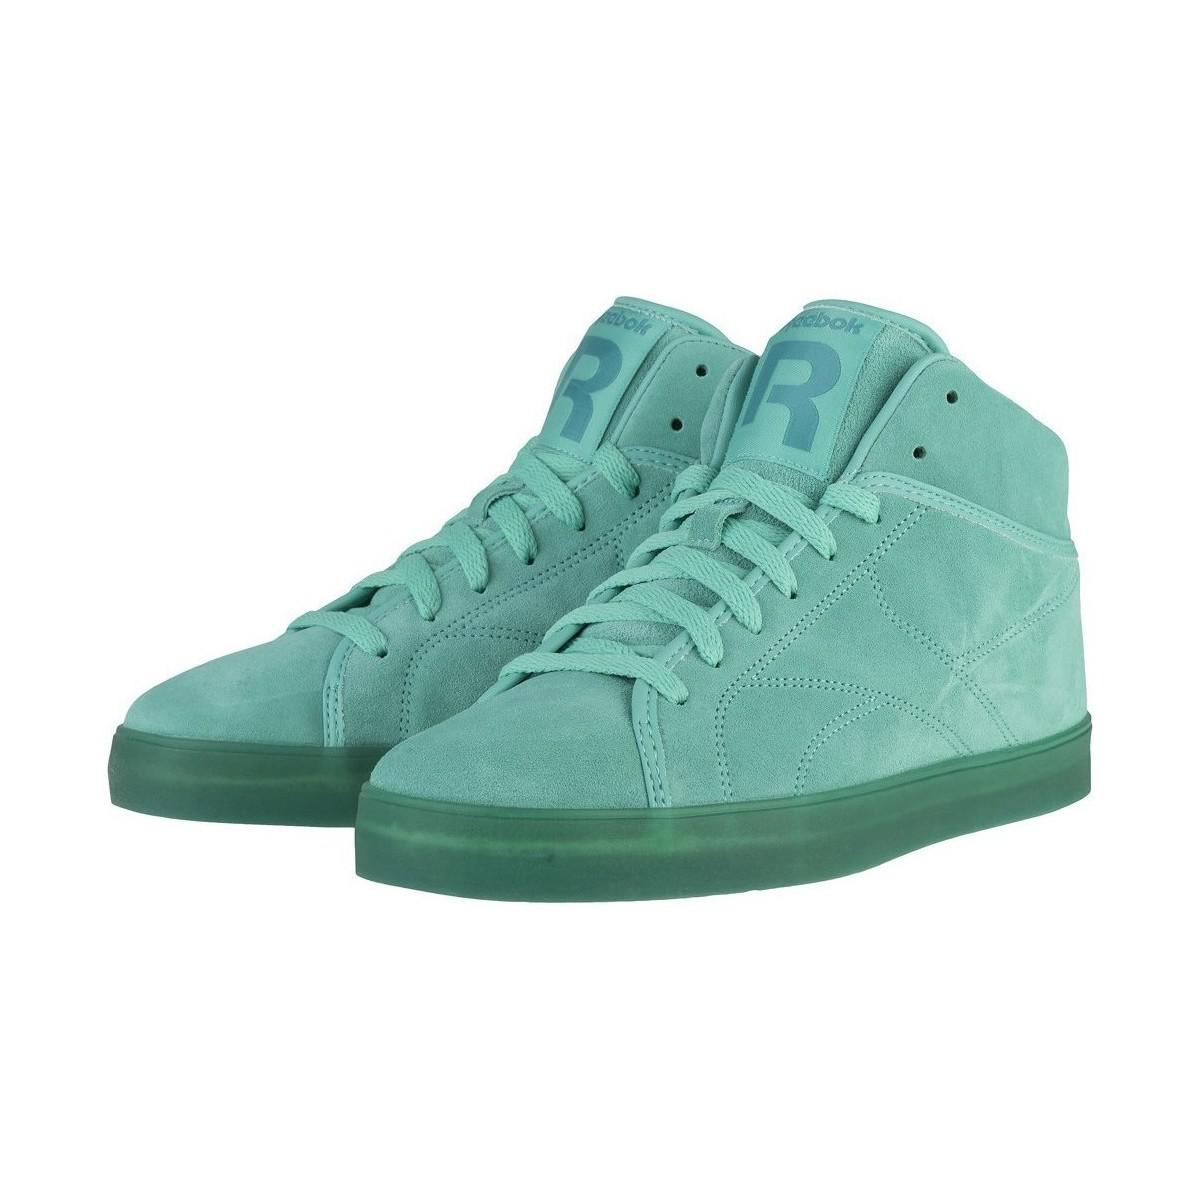 8f19778aa41b8a Reebok T Raww Men s Shoes (high-top Trainers) In Green in Green for ...